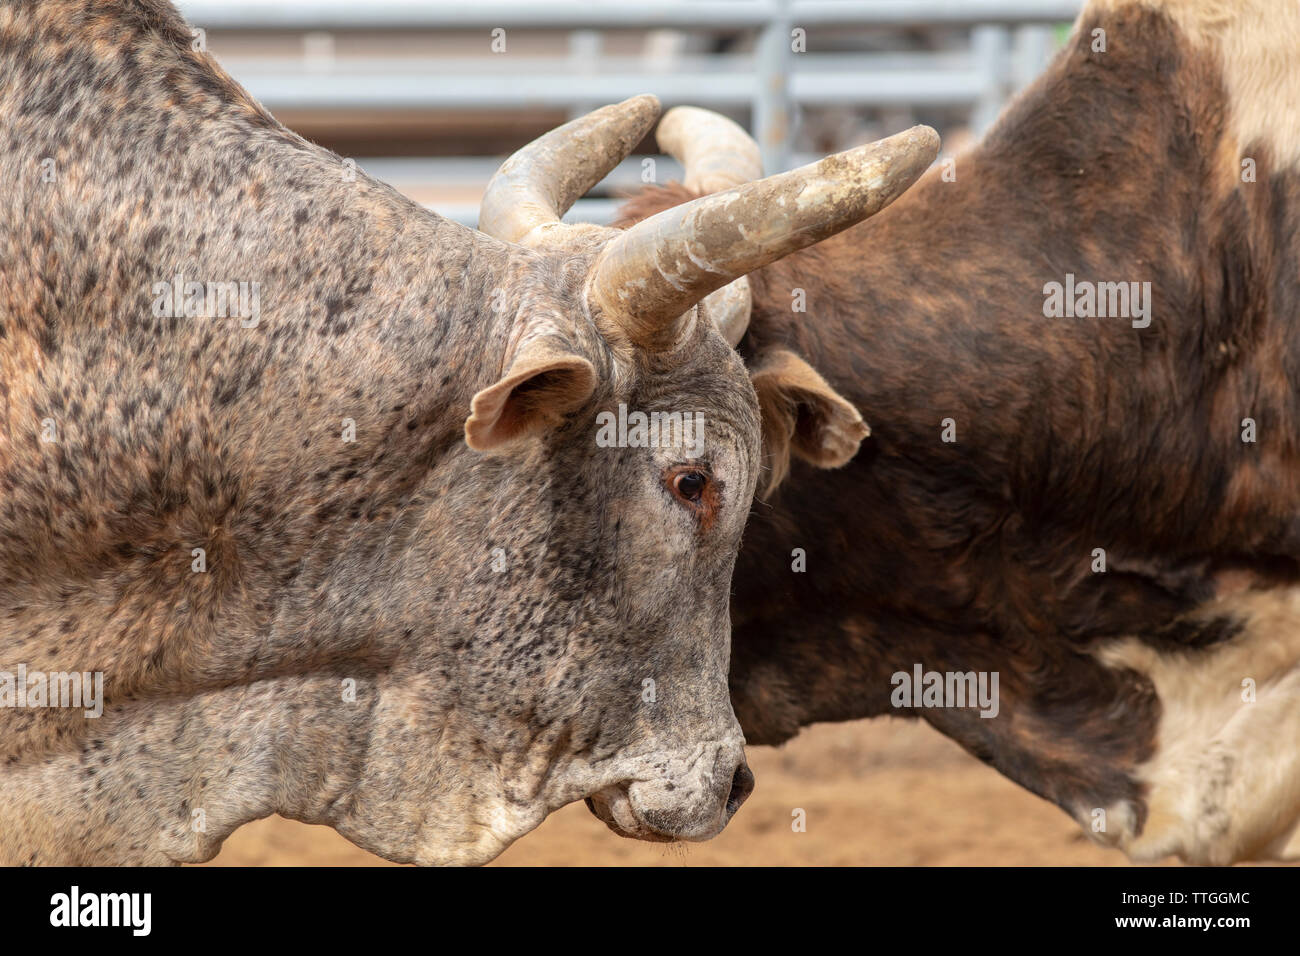 Two bulls with heads together at western rodeo - Stock Image